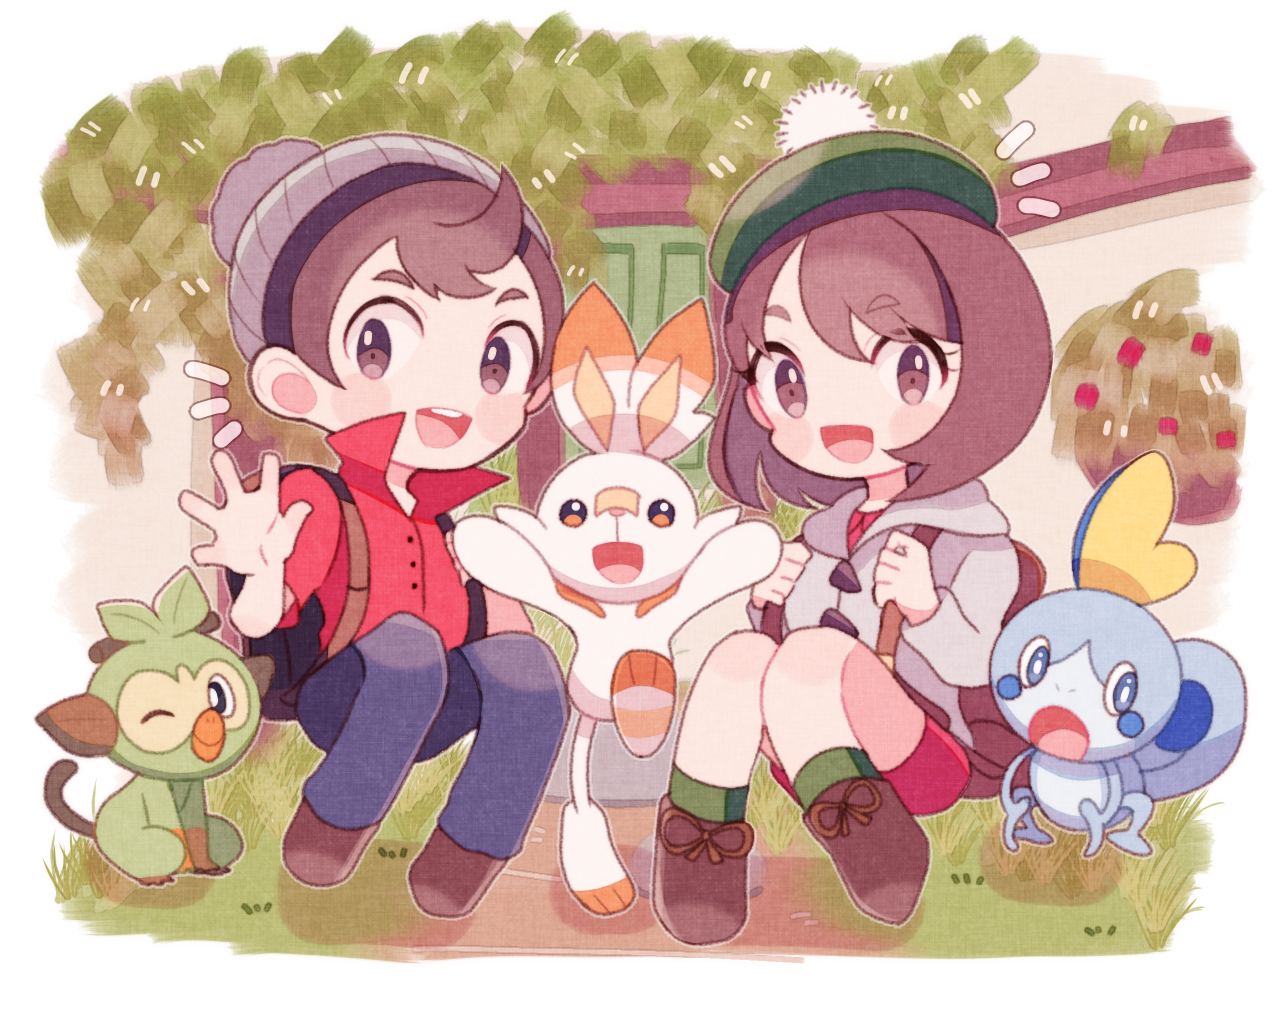 Pokemon Sword And Shield Has Developed Quite The Fanart Following